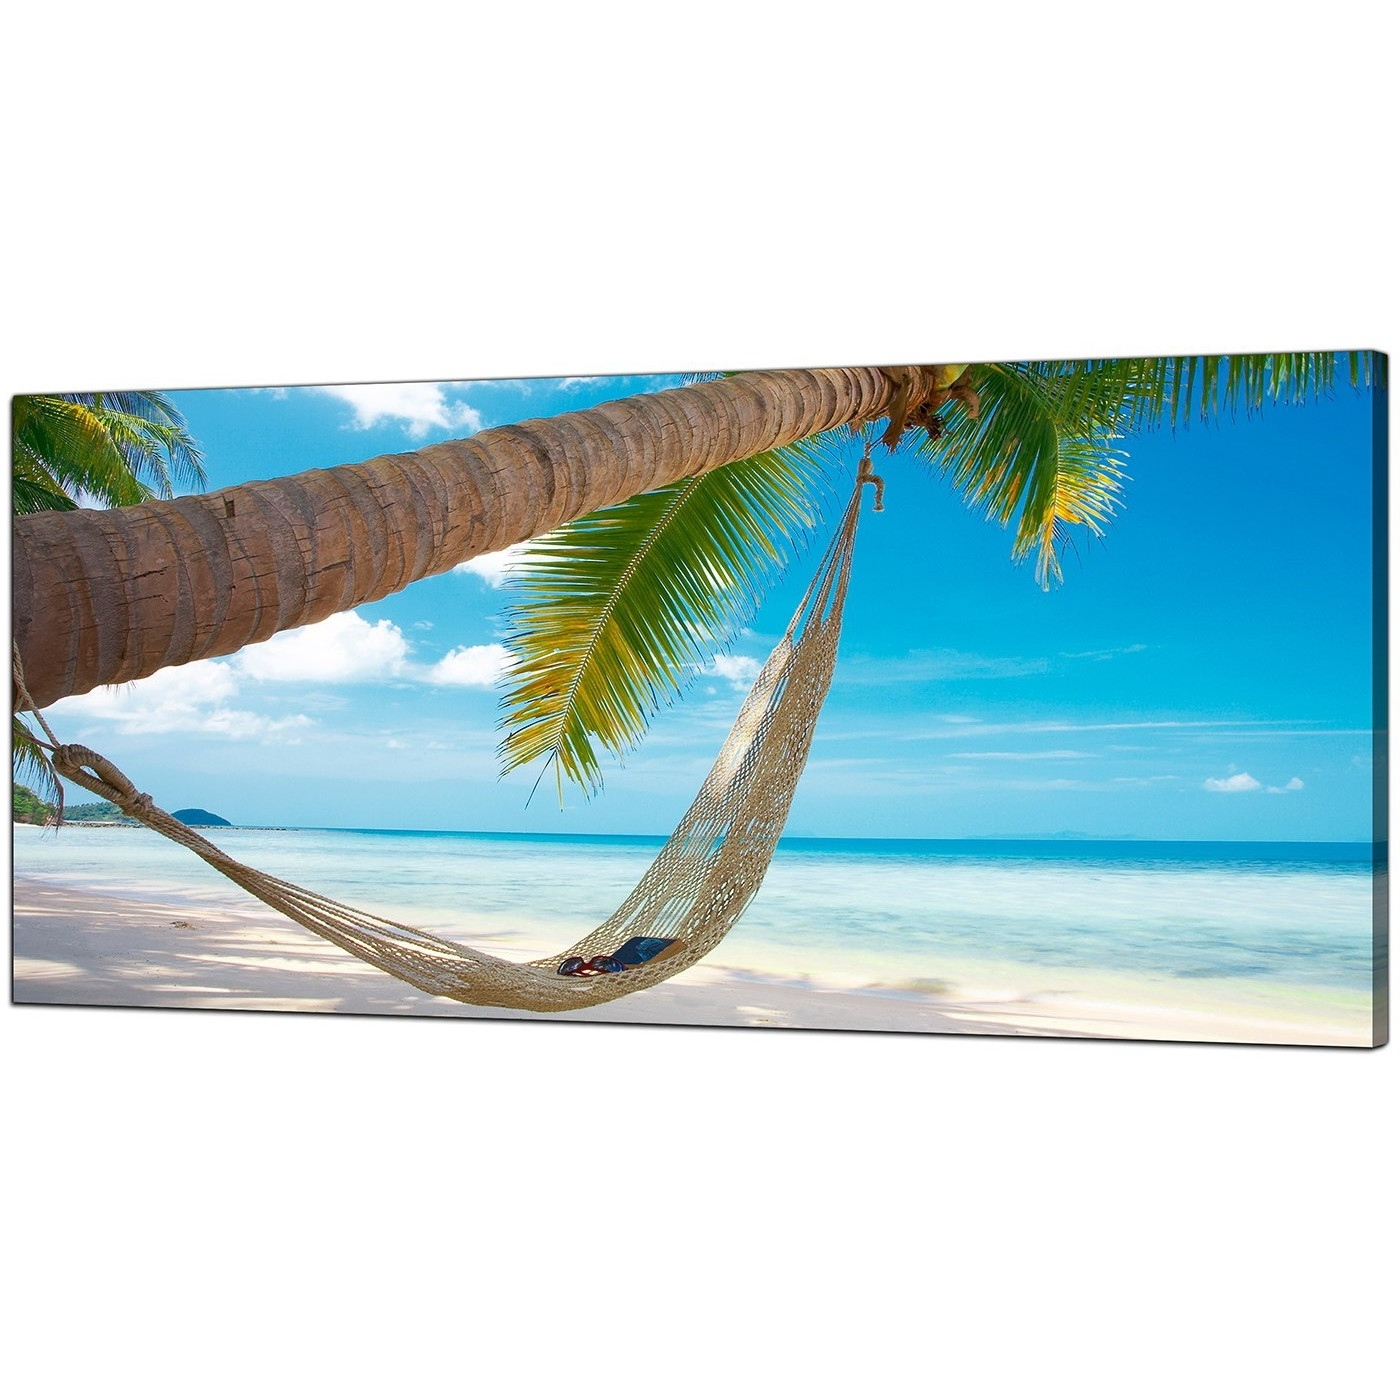 Large Blue Canvas Wall Art Of A Tropical Beach Intended For Preferred Beach Wall Art (View 11 of 15)